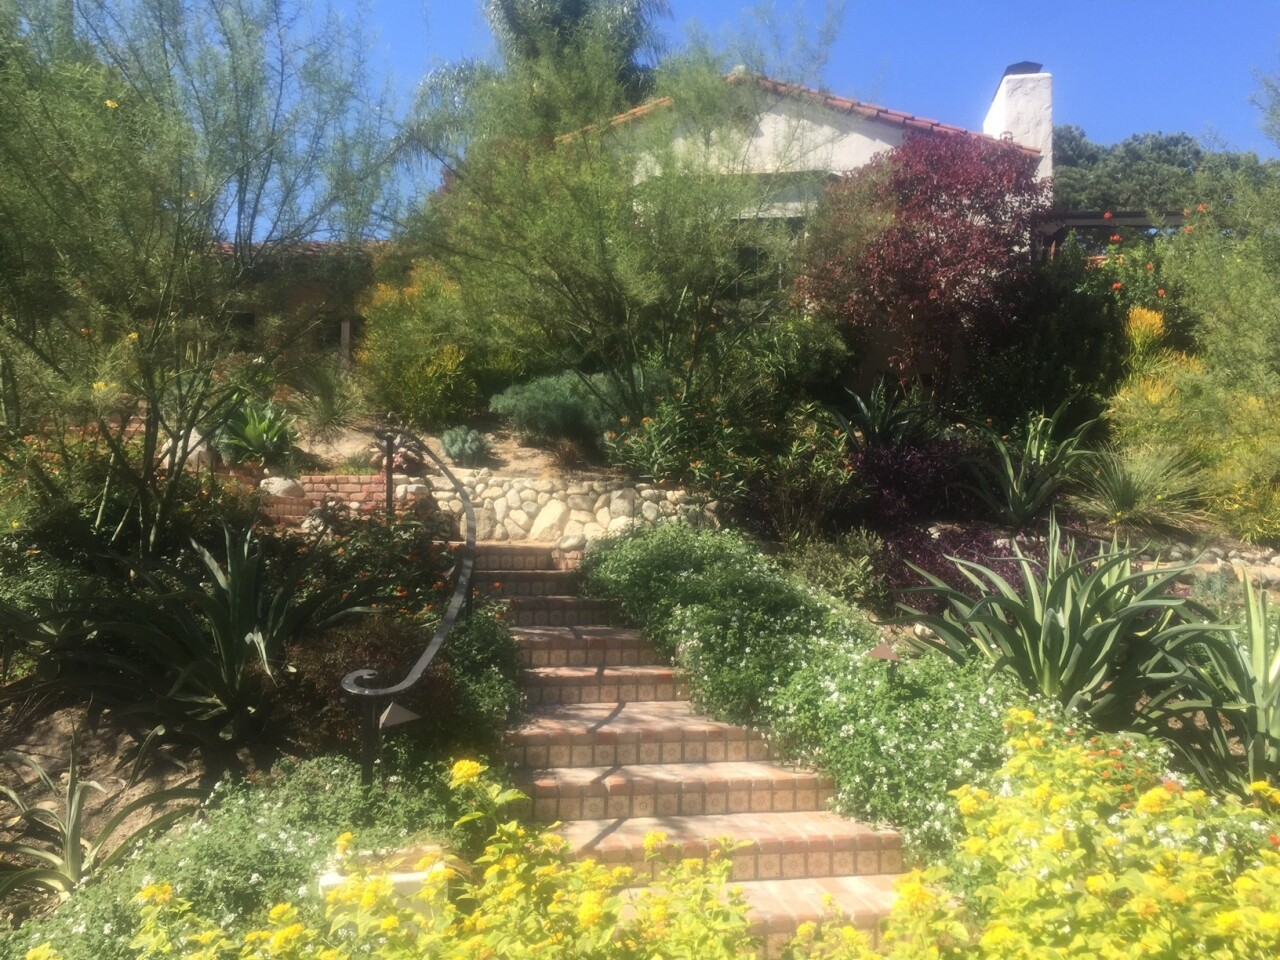 Amber Denker's Toluca Lake garden today is a hub for neighbors and wildlife. It features a new, inviting path to the 1924 Spanish home, where actor Gabby Hayes once lived.